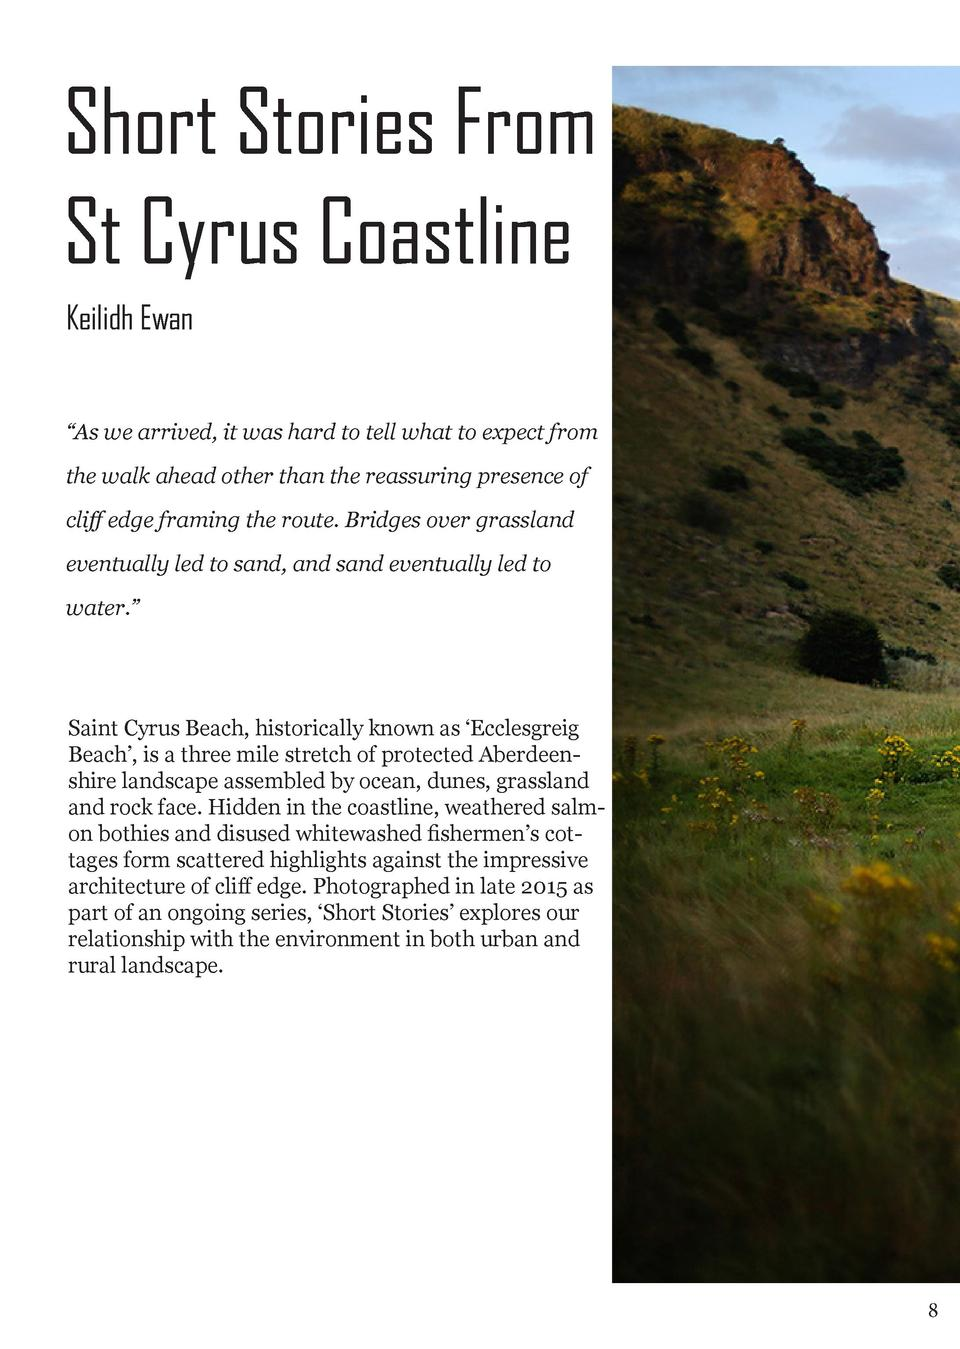 Short Stories From St Cyrus Coastline Keilidh Ewan    As we arrived, it was hard to tell what to expect from the walk ahea...